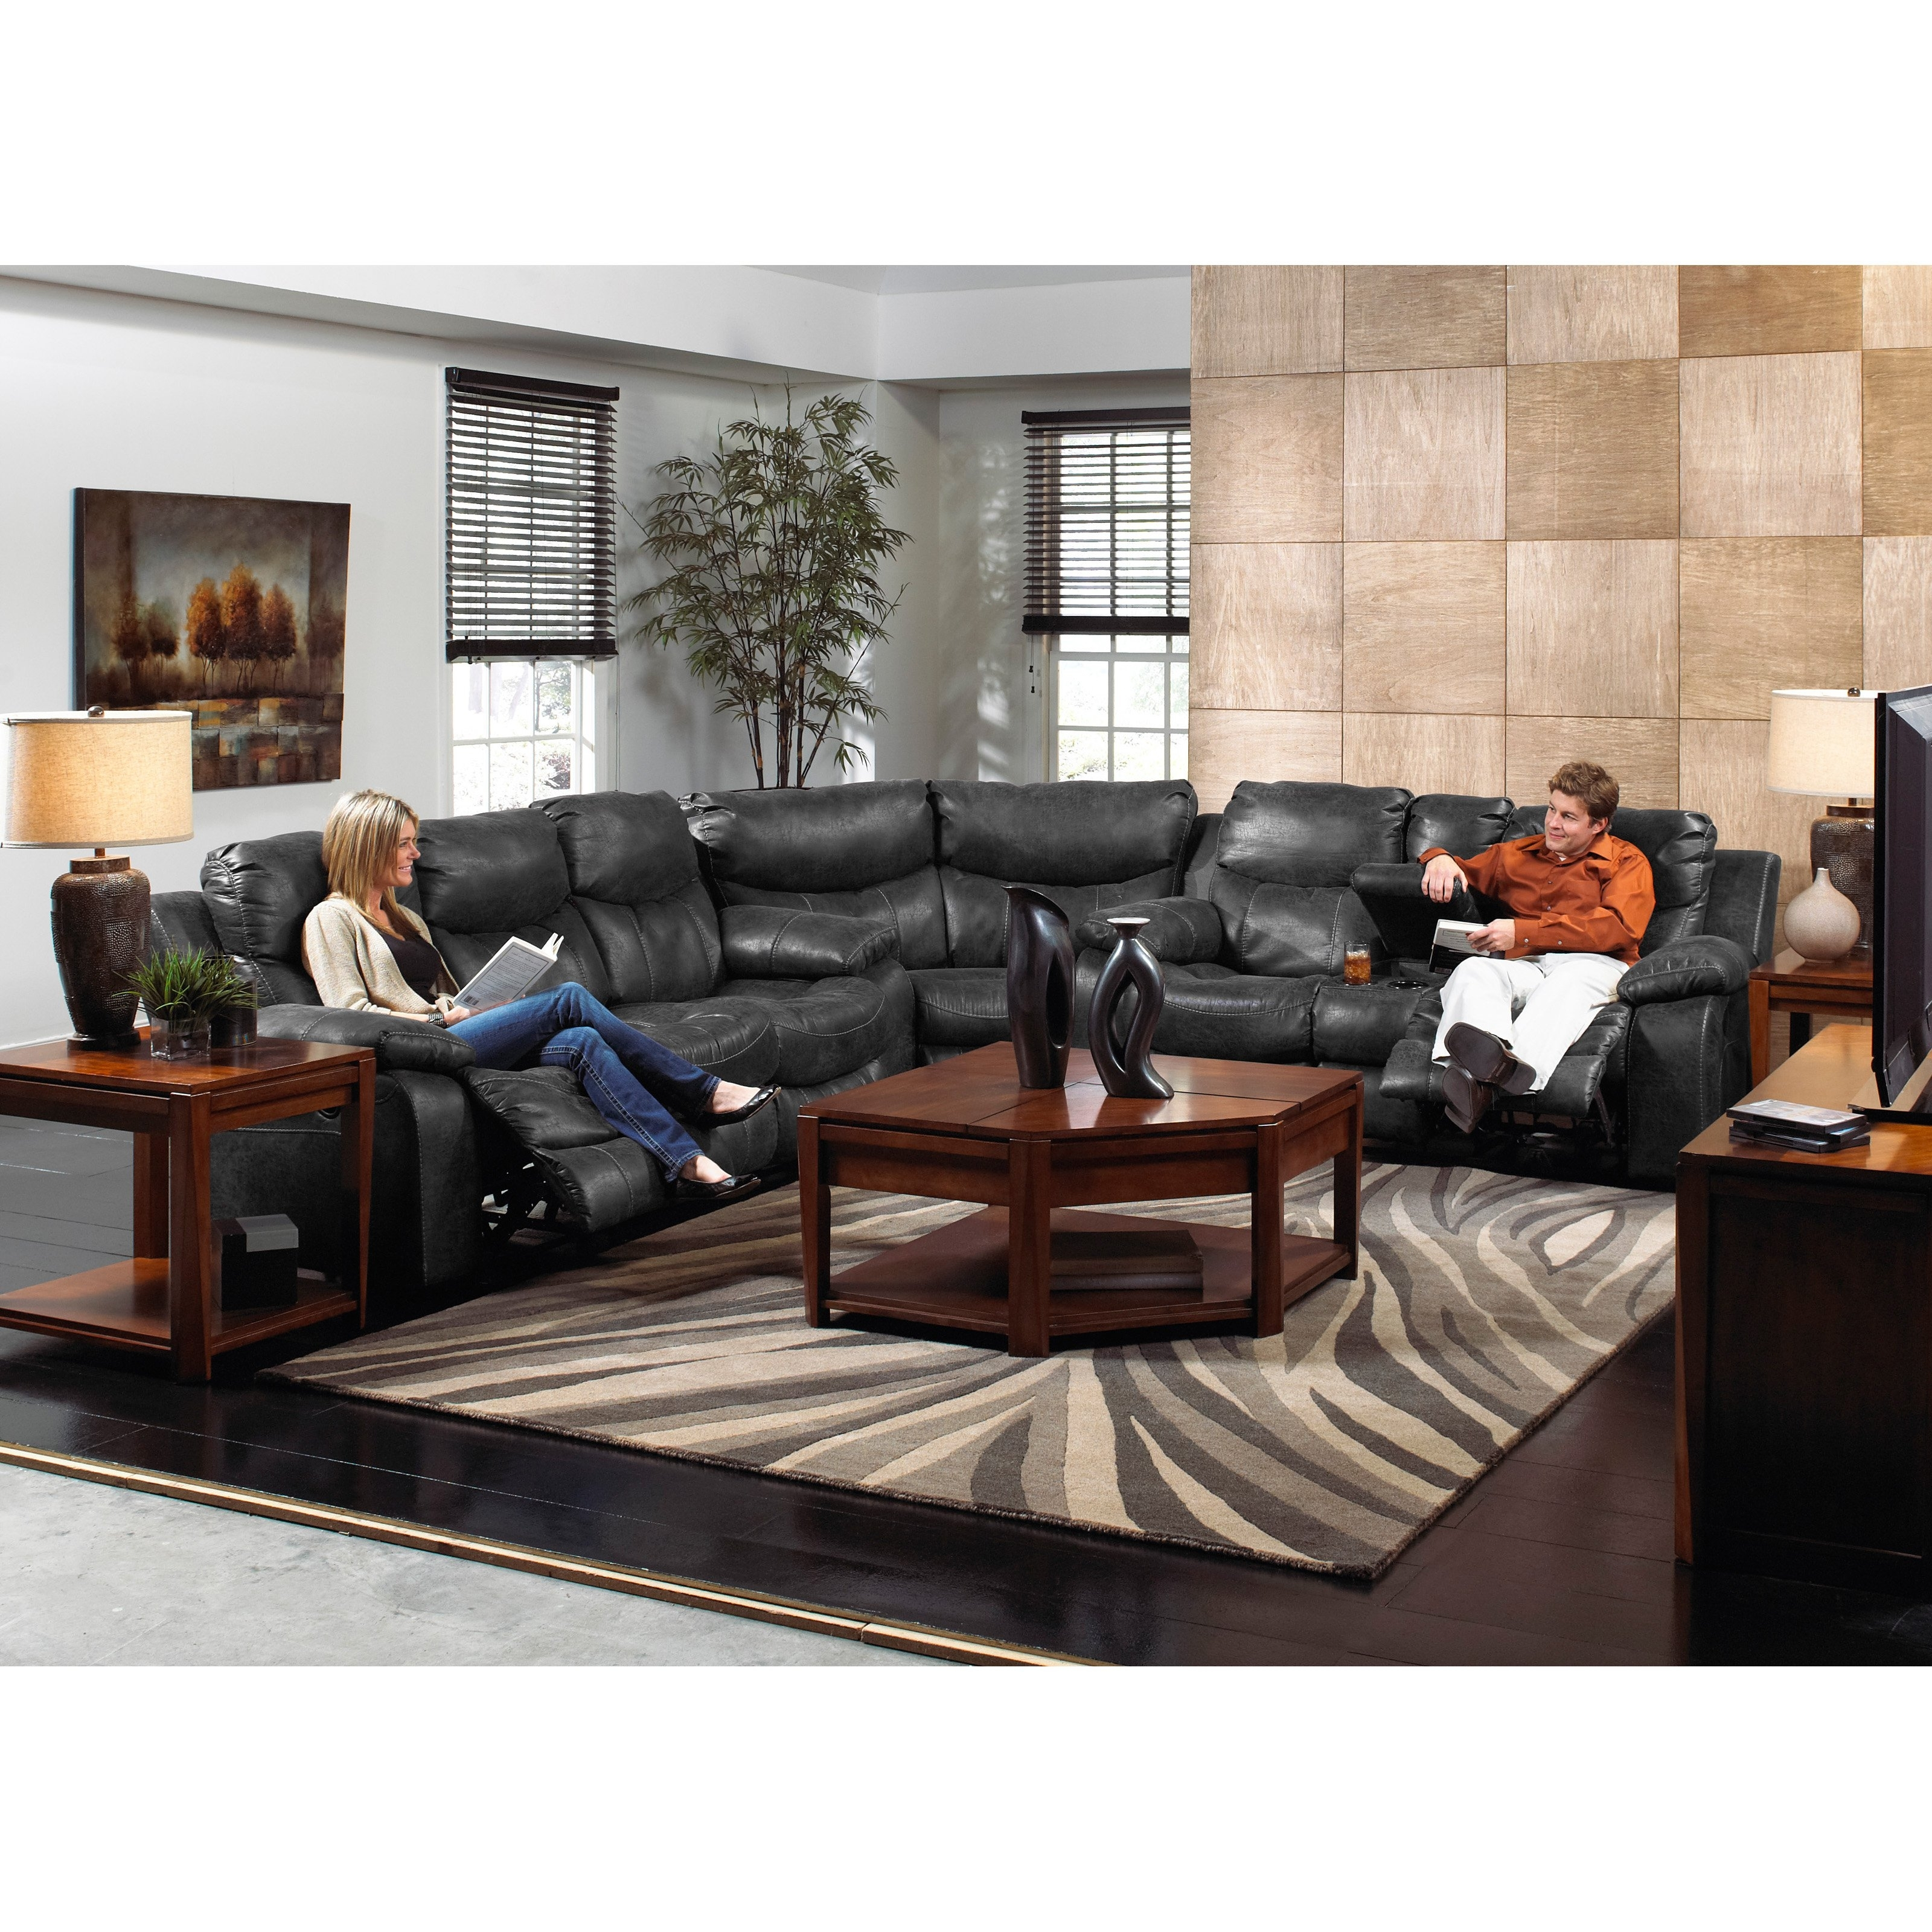 Gray Leather Reclining Sectional inside Clyde Grey Leather 3 Piece Power Reclining Sectionals With Pwr Hdrst & Usb